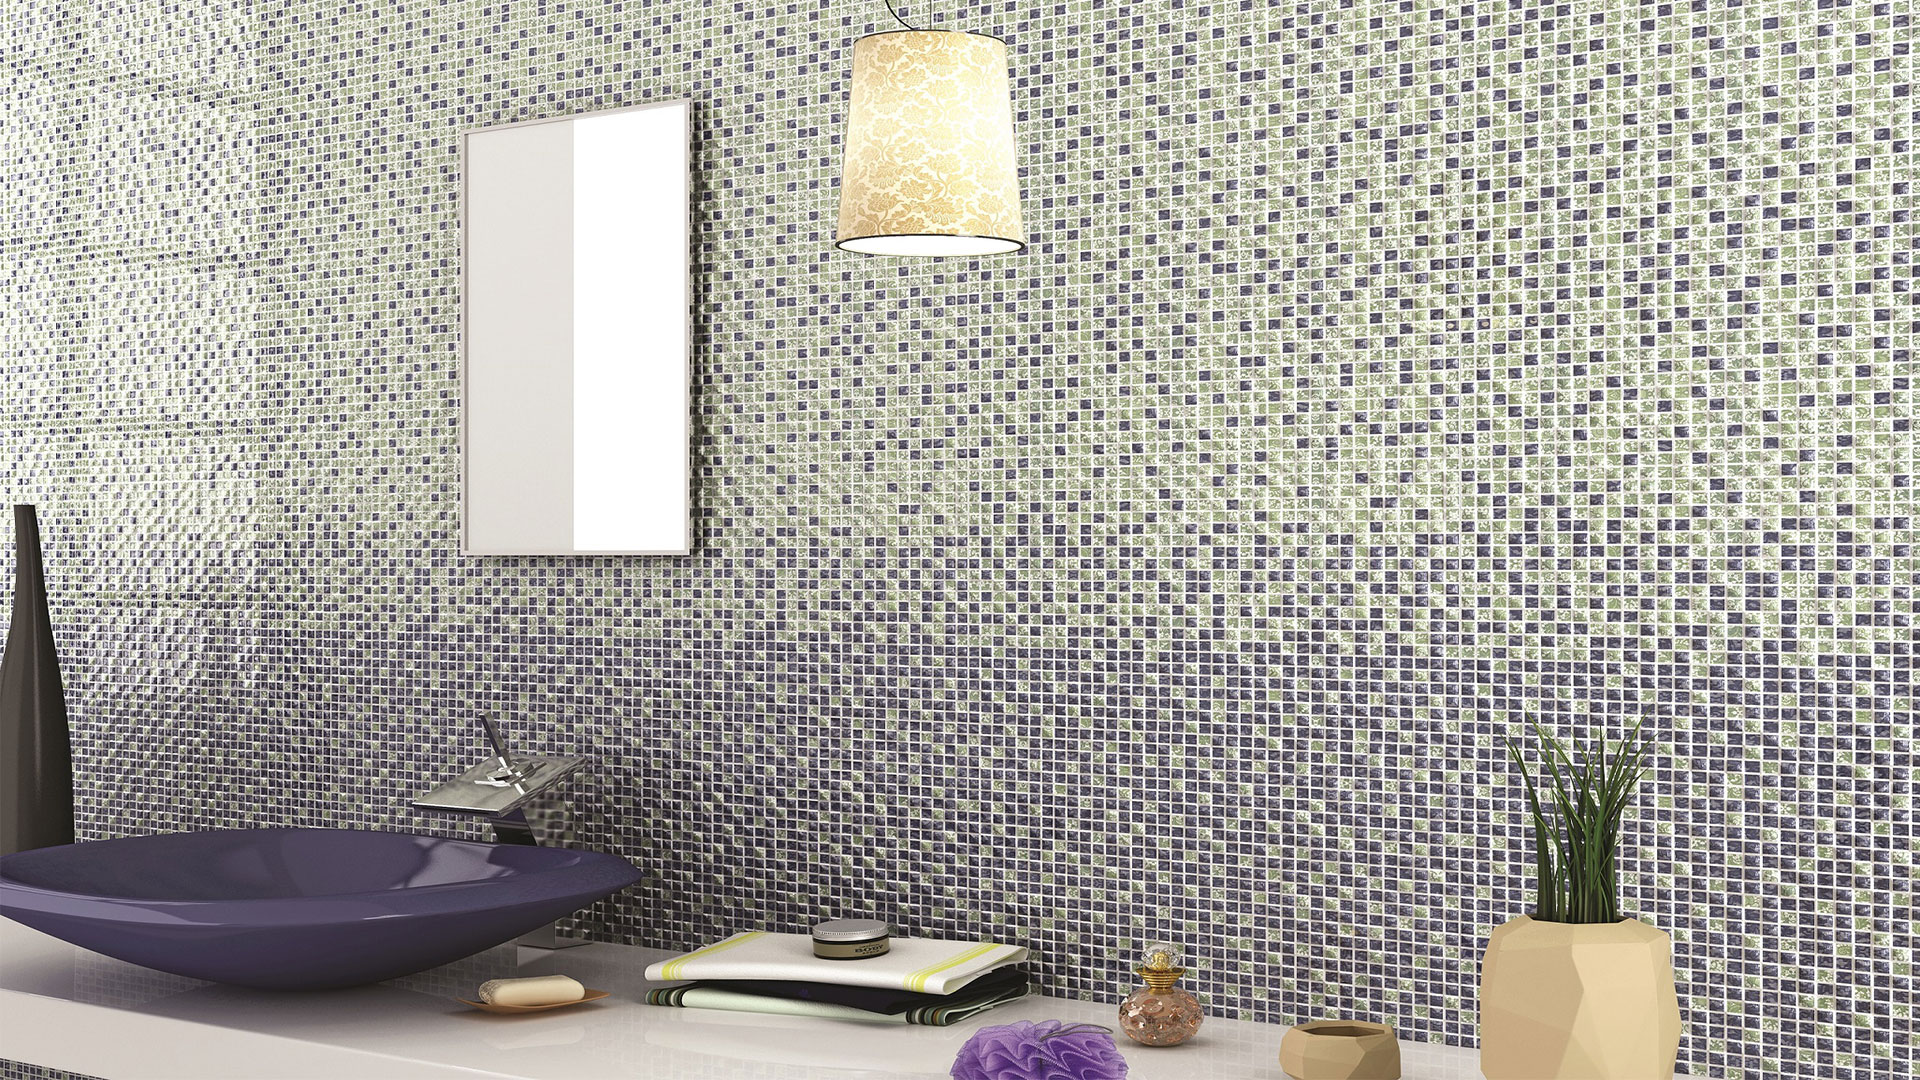 Made In India Designer Tiles That Are Making A Splash Architectural Digest India